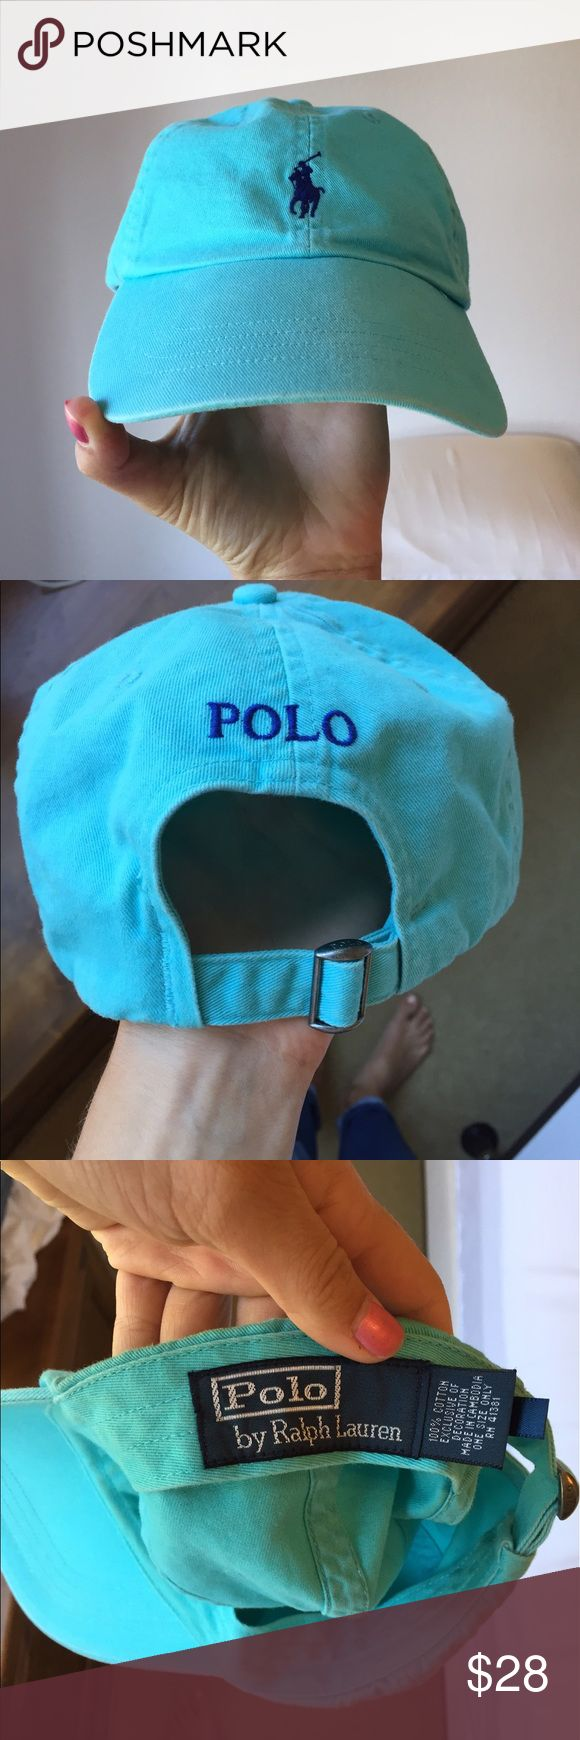 Ralph Lauren Polo hat in baby blue Barely worn, Authentic Ralph Lauren polo hat in baby blue with darker blue embroidery. Will do Ⓜ️ if needed! There is slight coloration on the front inside as shown in the last picture but it's hardly noticeable and on the inside of the hat(: Ralph Lauren Accessories Hats